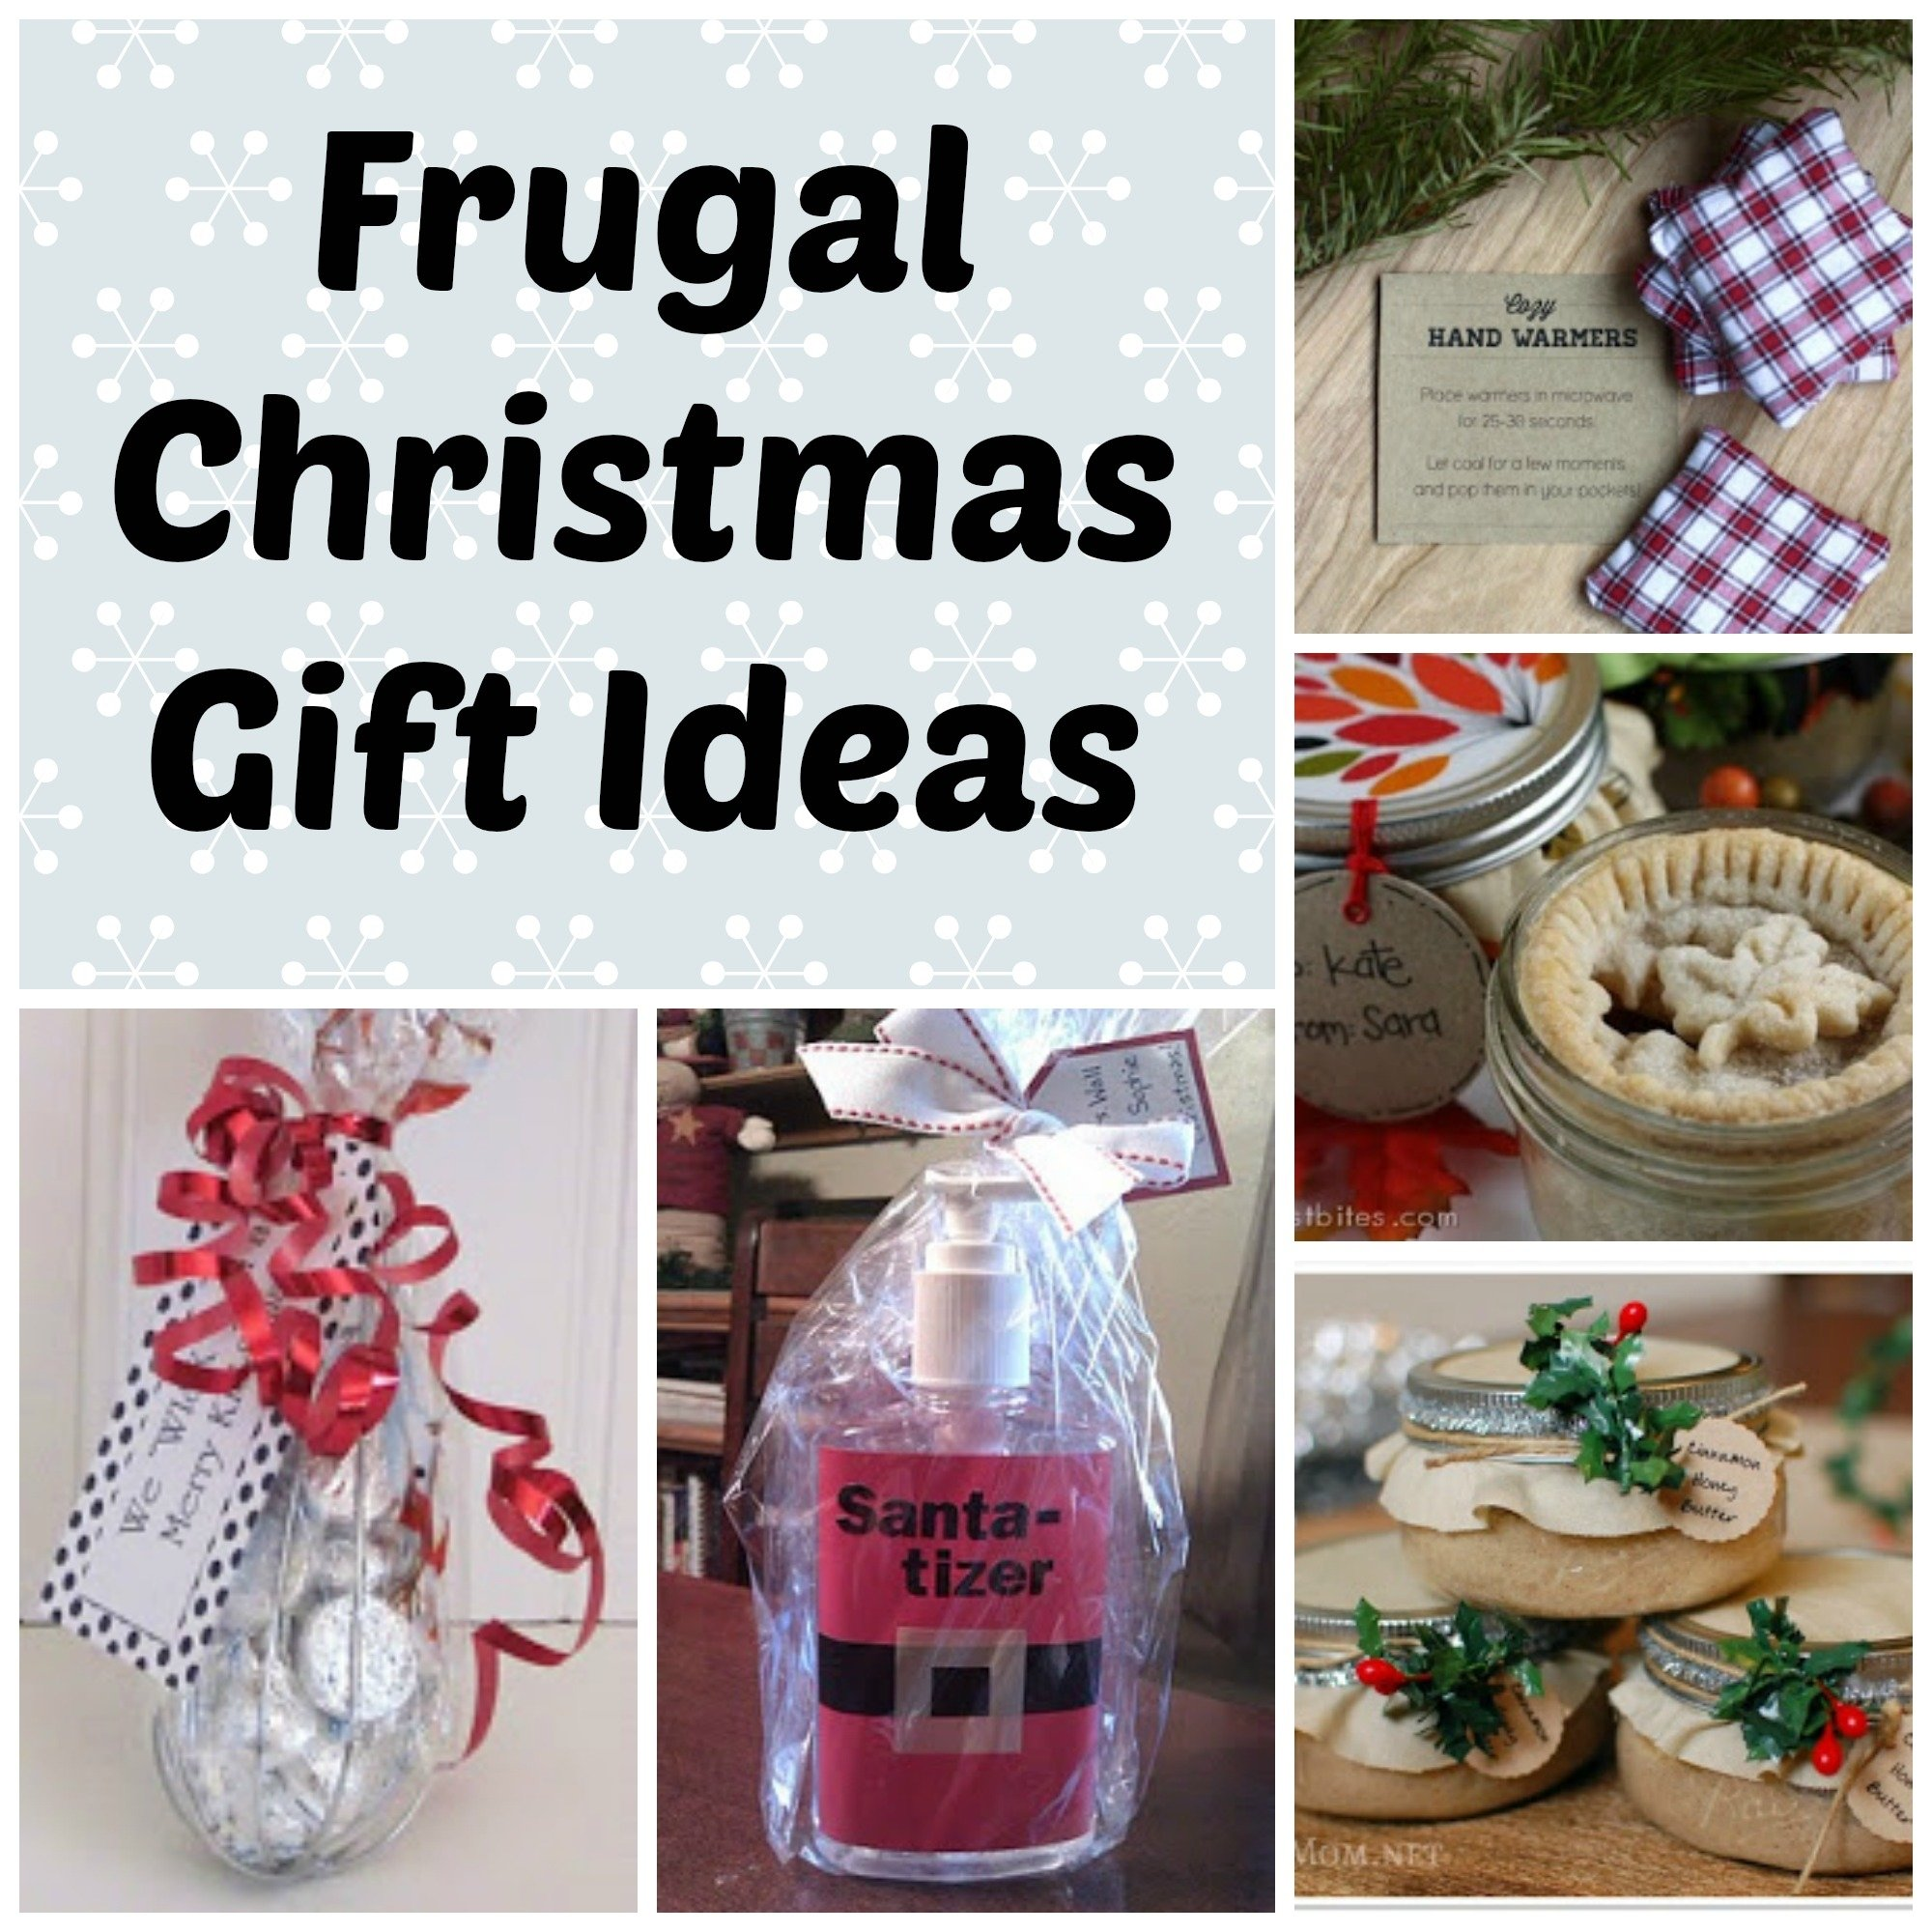 10 Stylish Gift Ideas For Family Friends frugal christmas gift ideas part 4 frugal christmas frugal and 14 2020